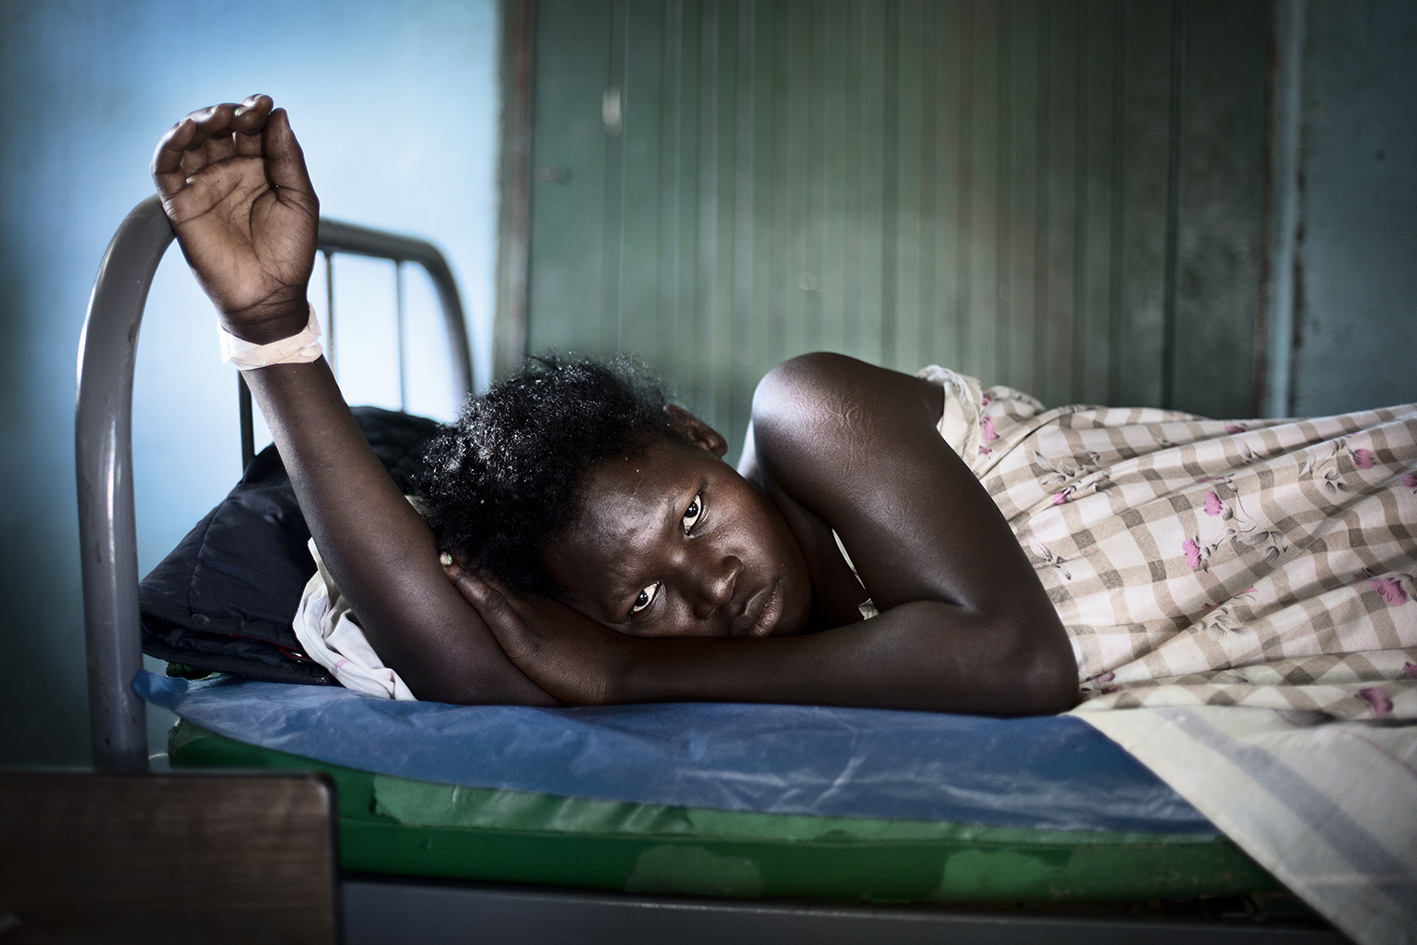 Rachel Kawala¸ 20¸ lost her baby¸ they had to do a emergency caesarean section but the baby survived only a few hours. 20-year-old Rachel Kawala has undergone three births¸ but only one child surveyed.